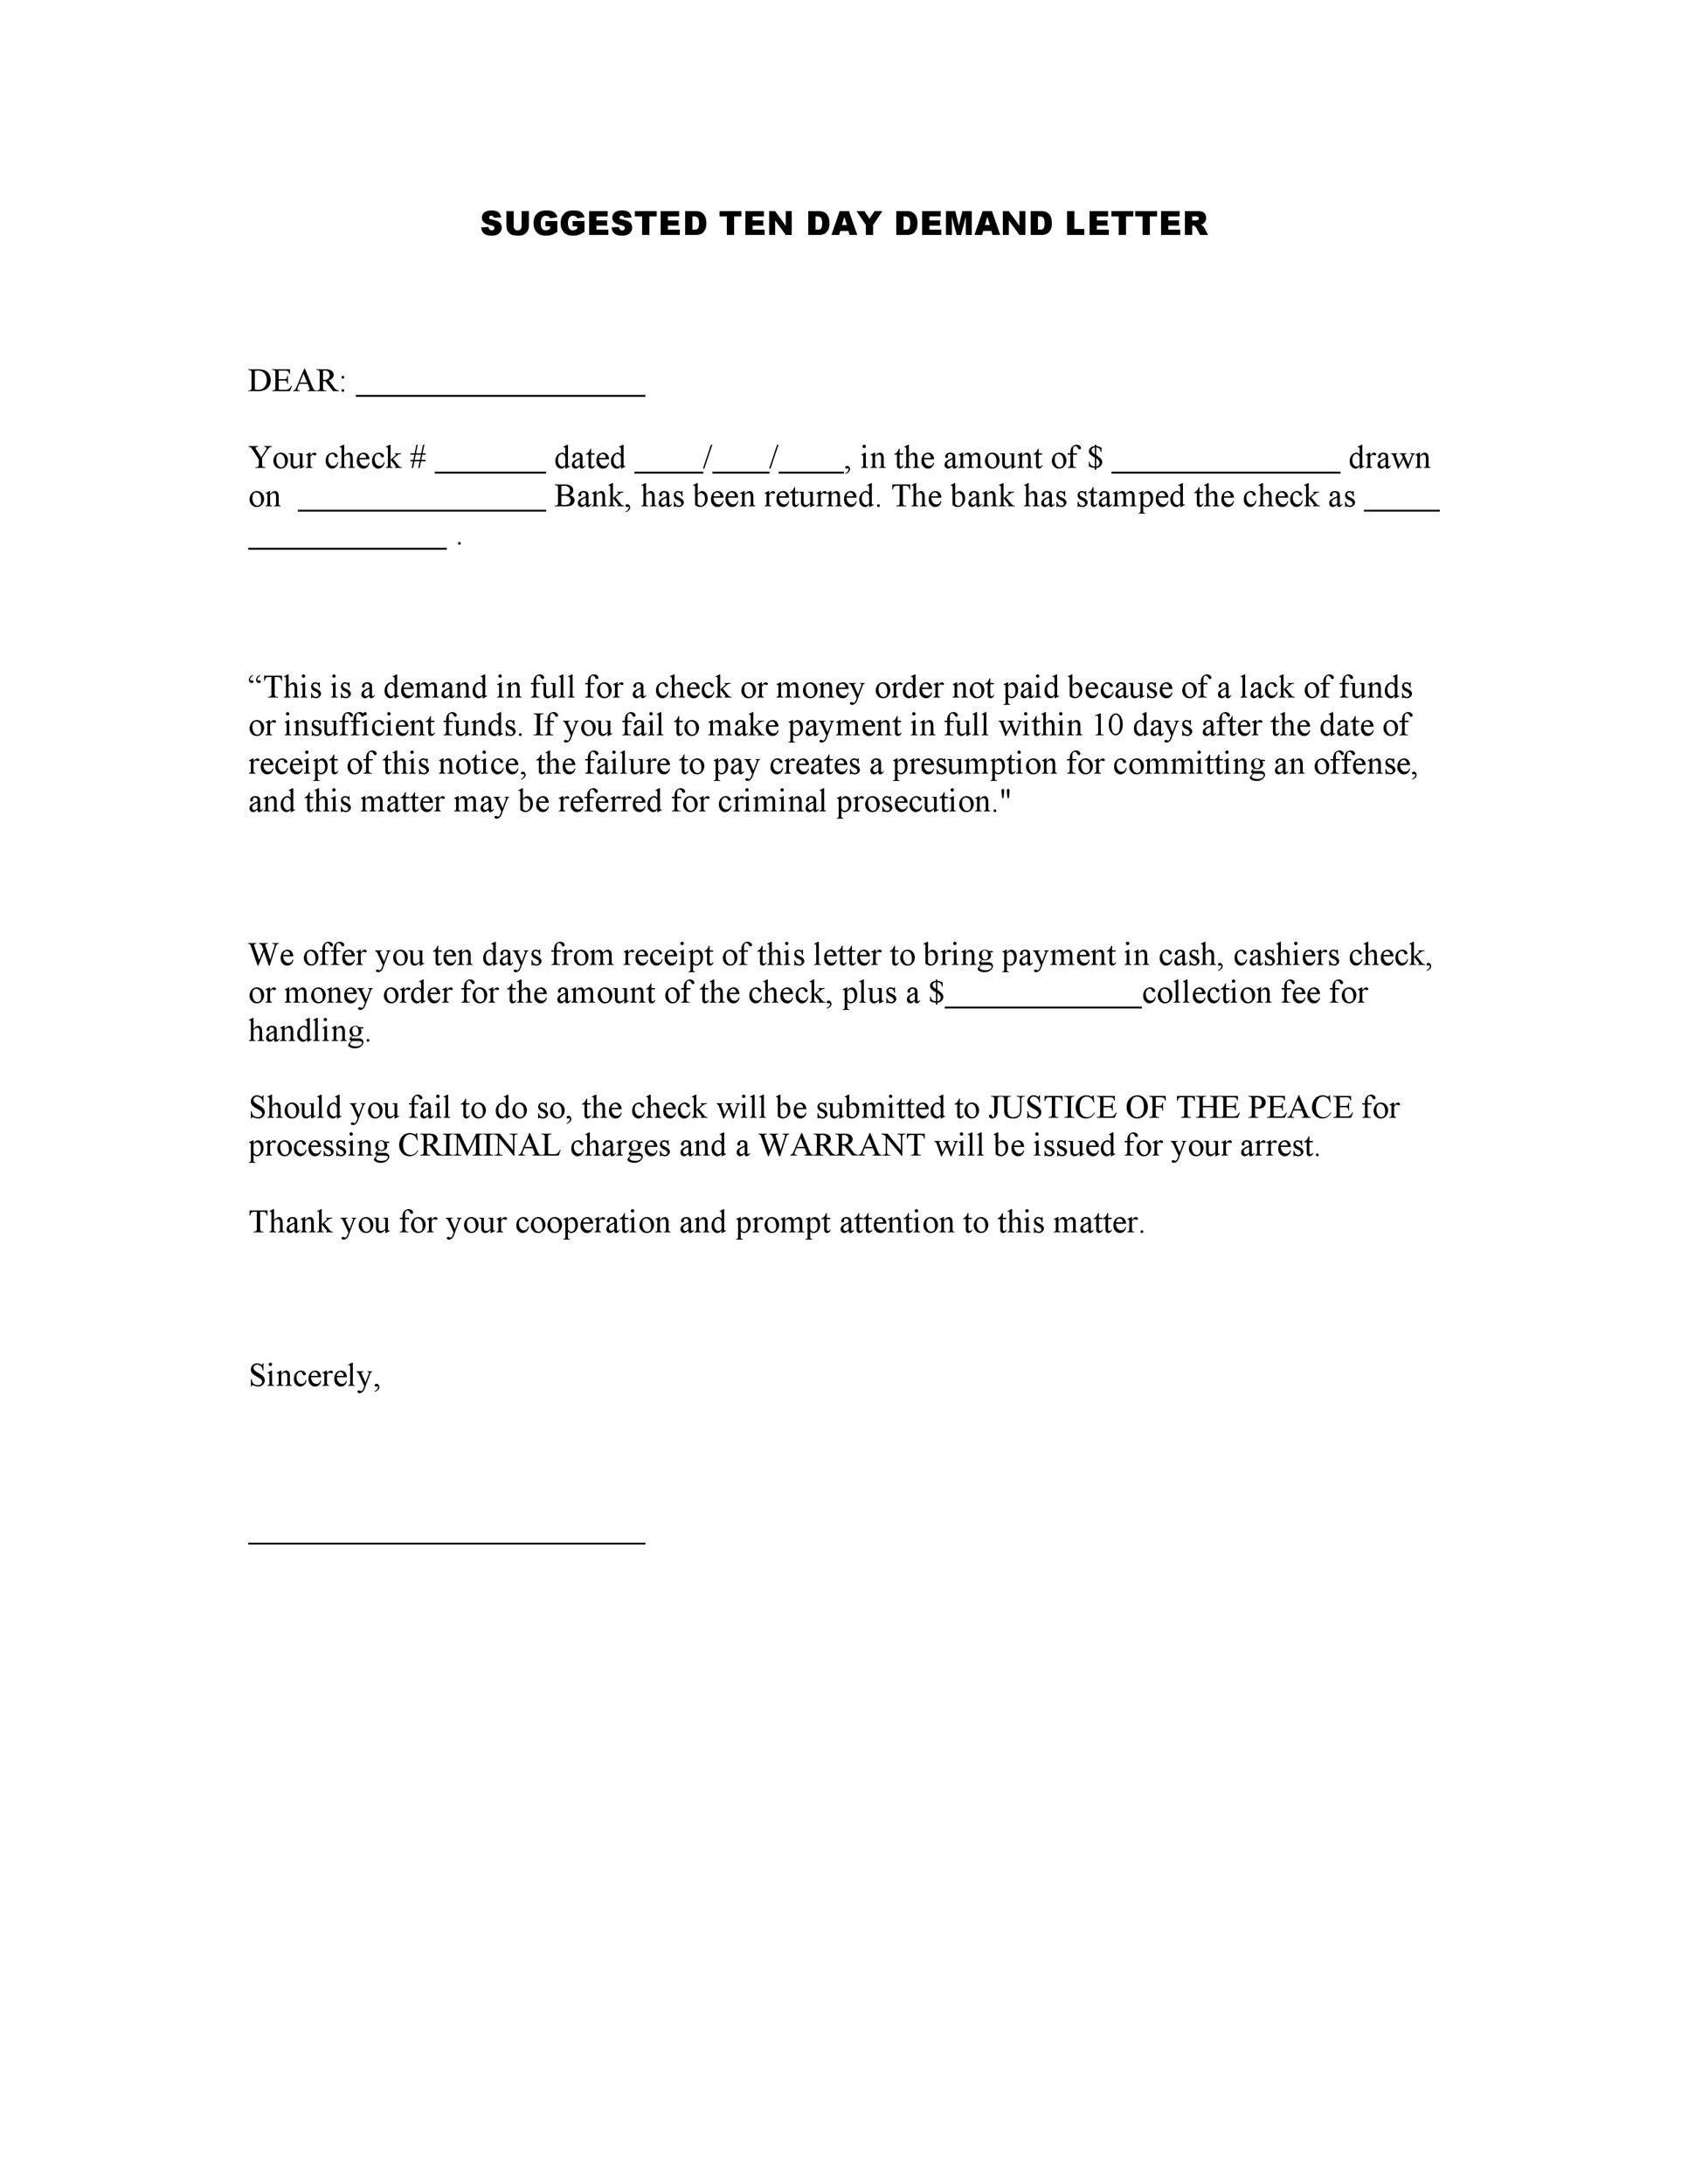 Demand-Letter-Template-09  Day Demand Letter Template To Return Auto Mobile on